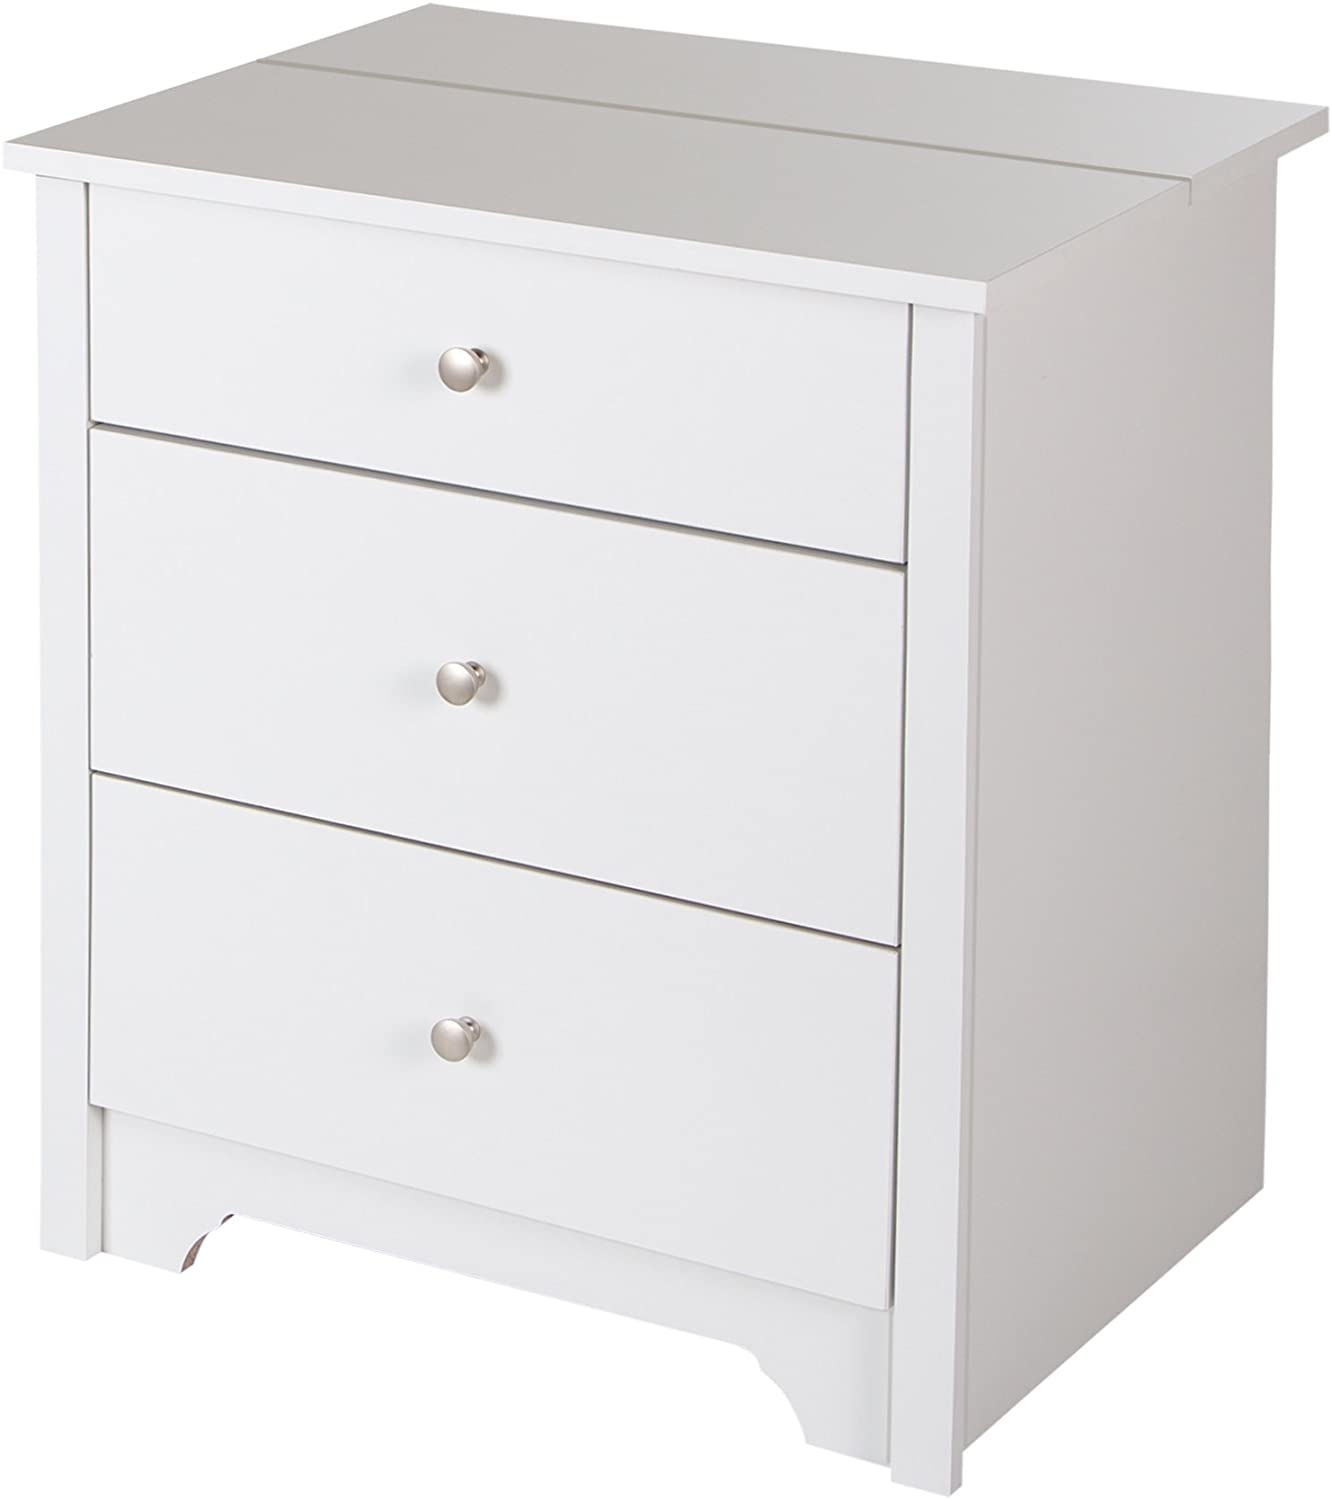 South Shore Vito Nightstand with 2 Drawers and Charging Station, Pure White